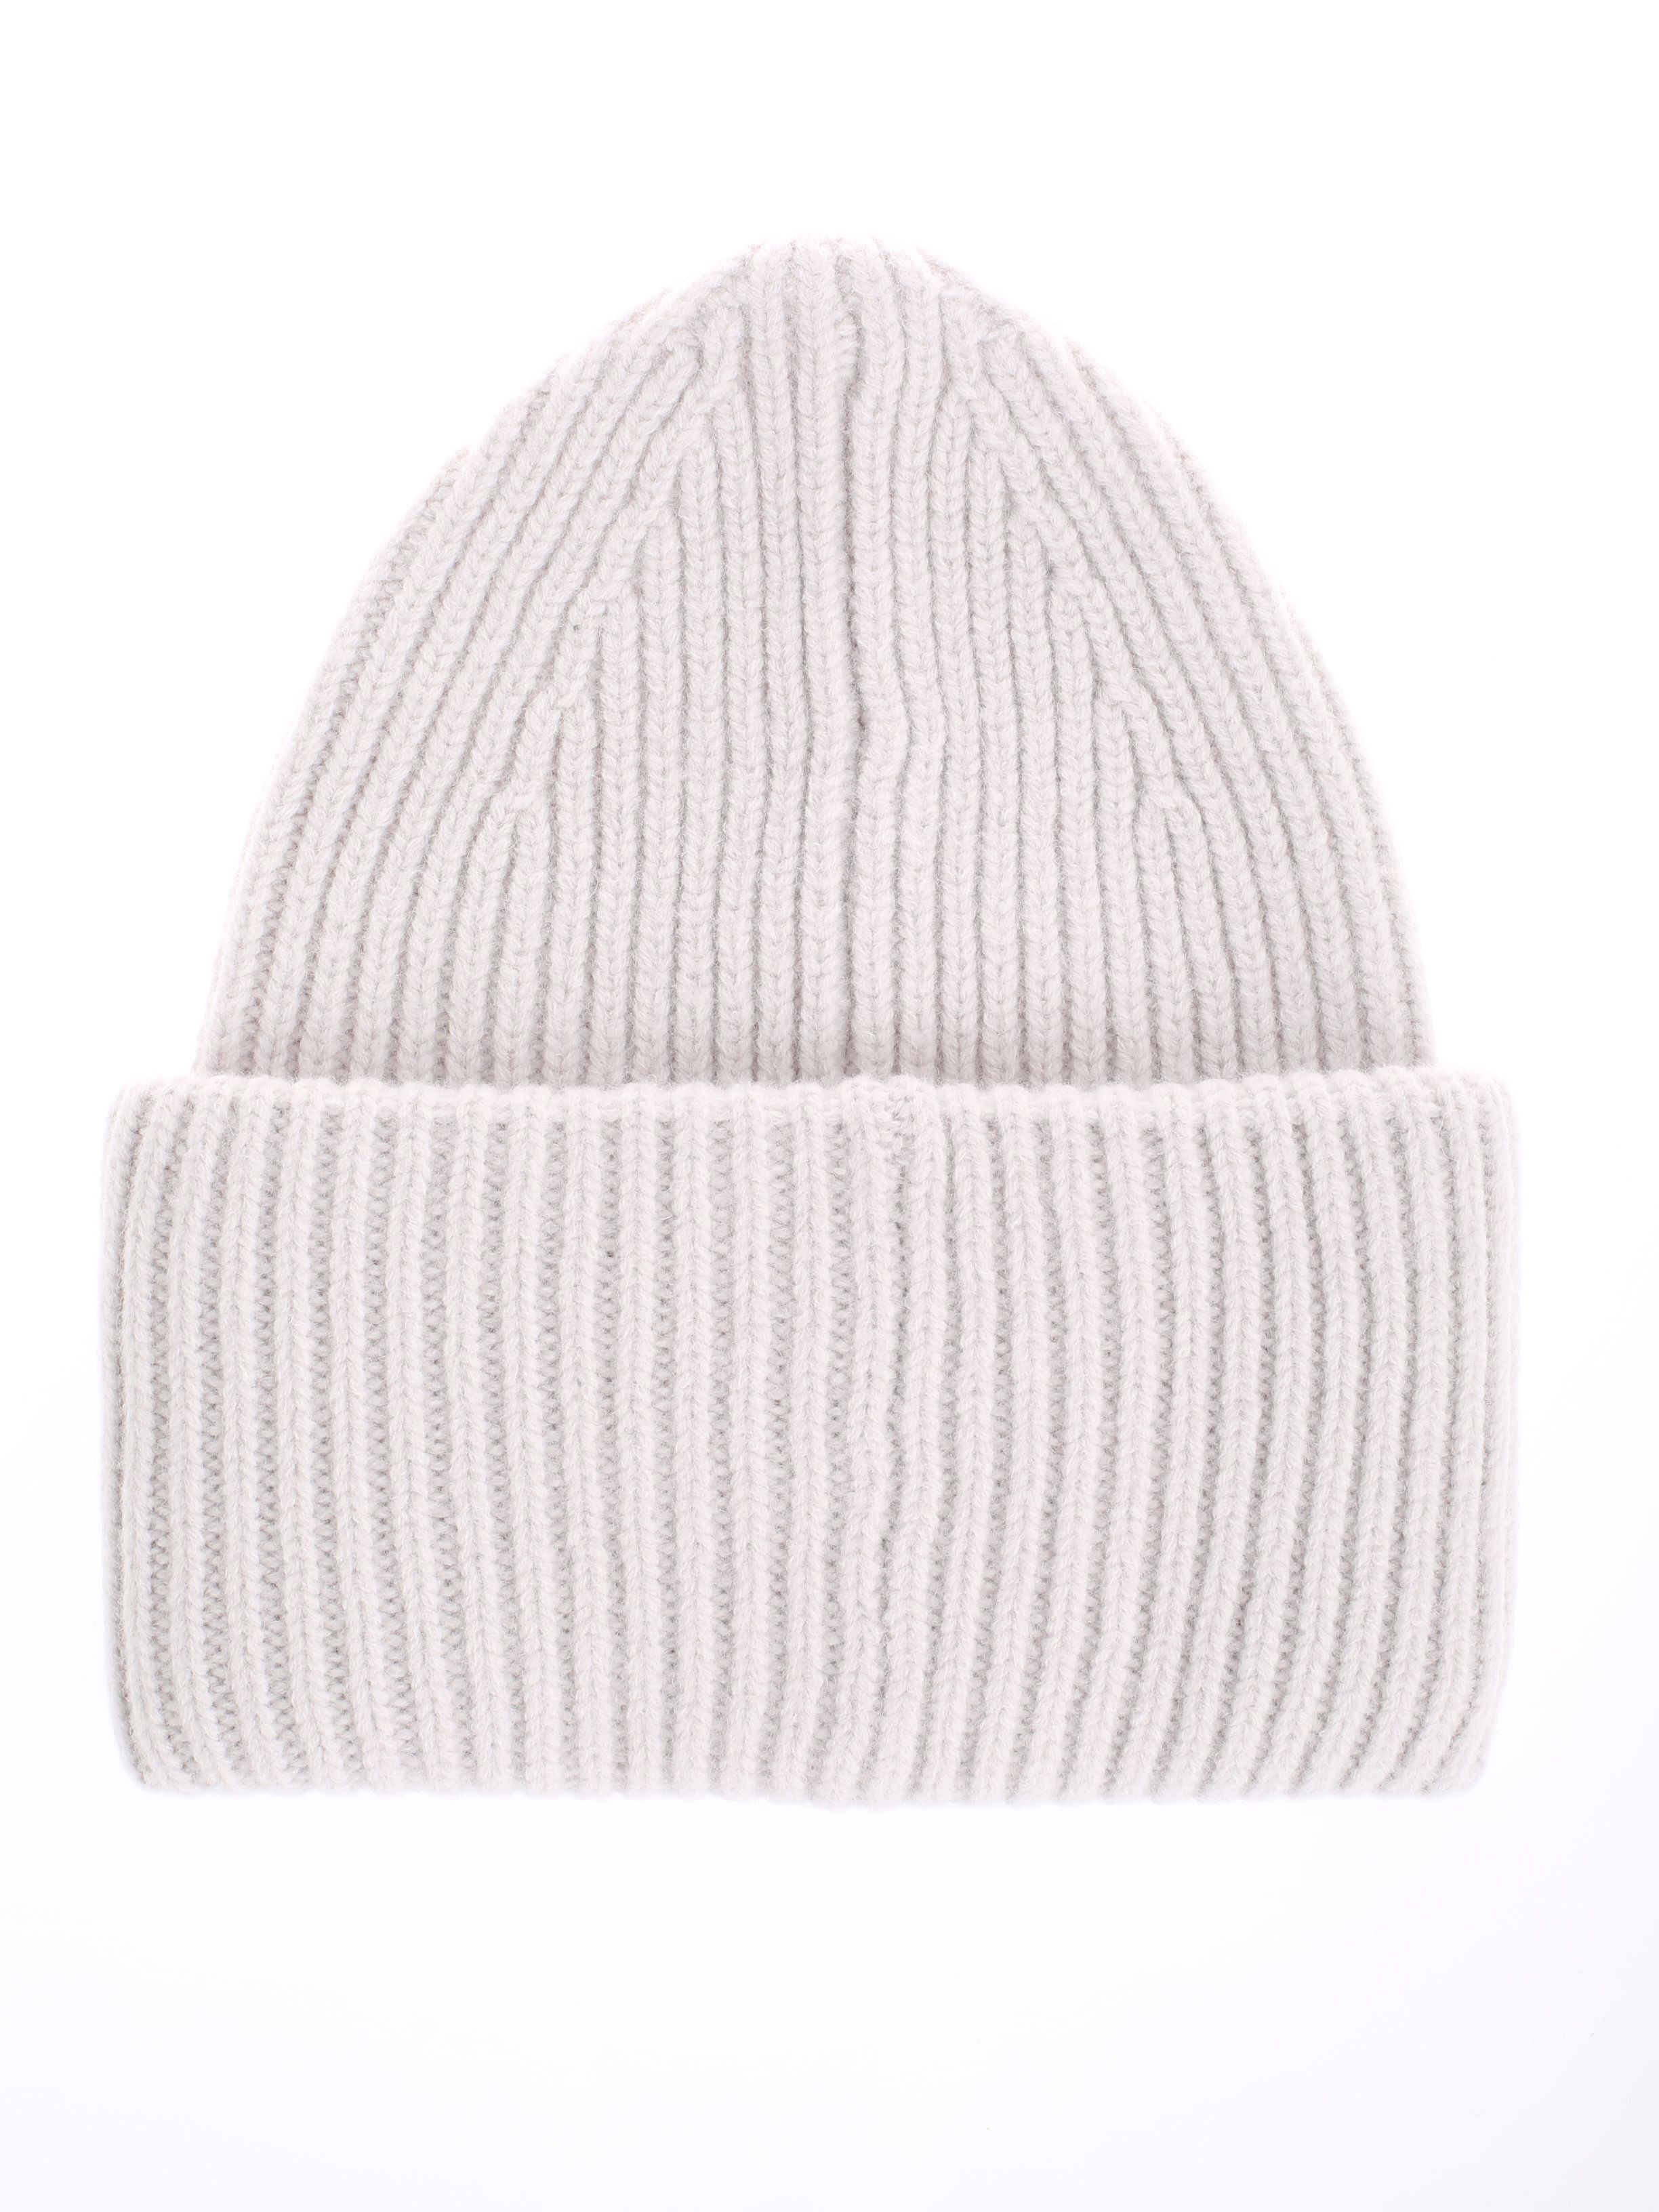 0f4bf0c8be45 Acne Studios - Acne Studios S Pansy Face Beanie - Grey .